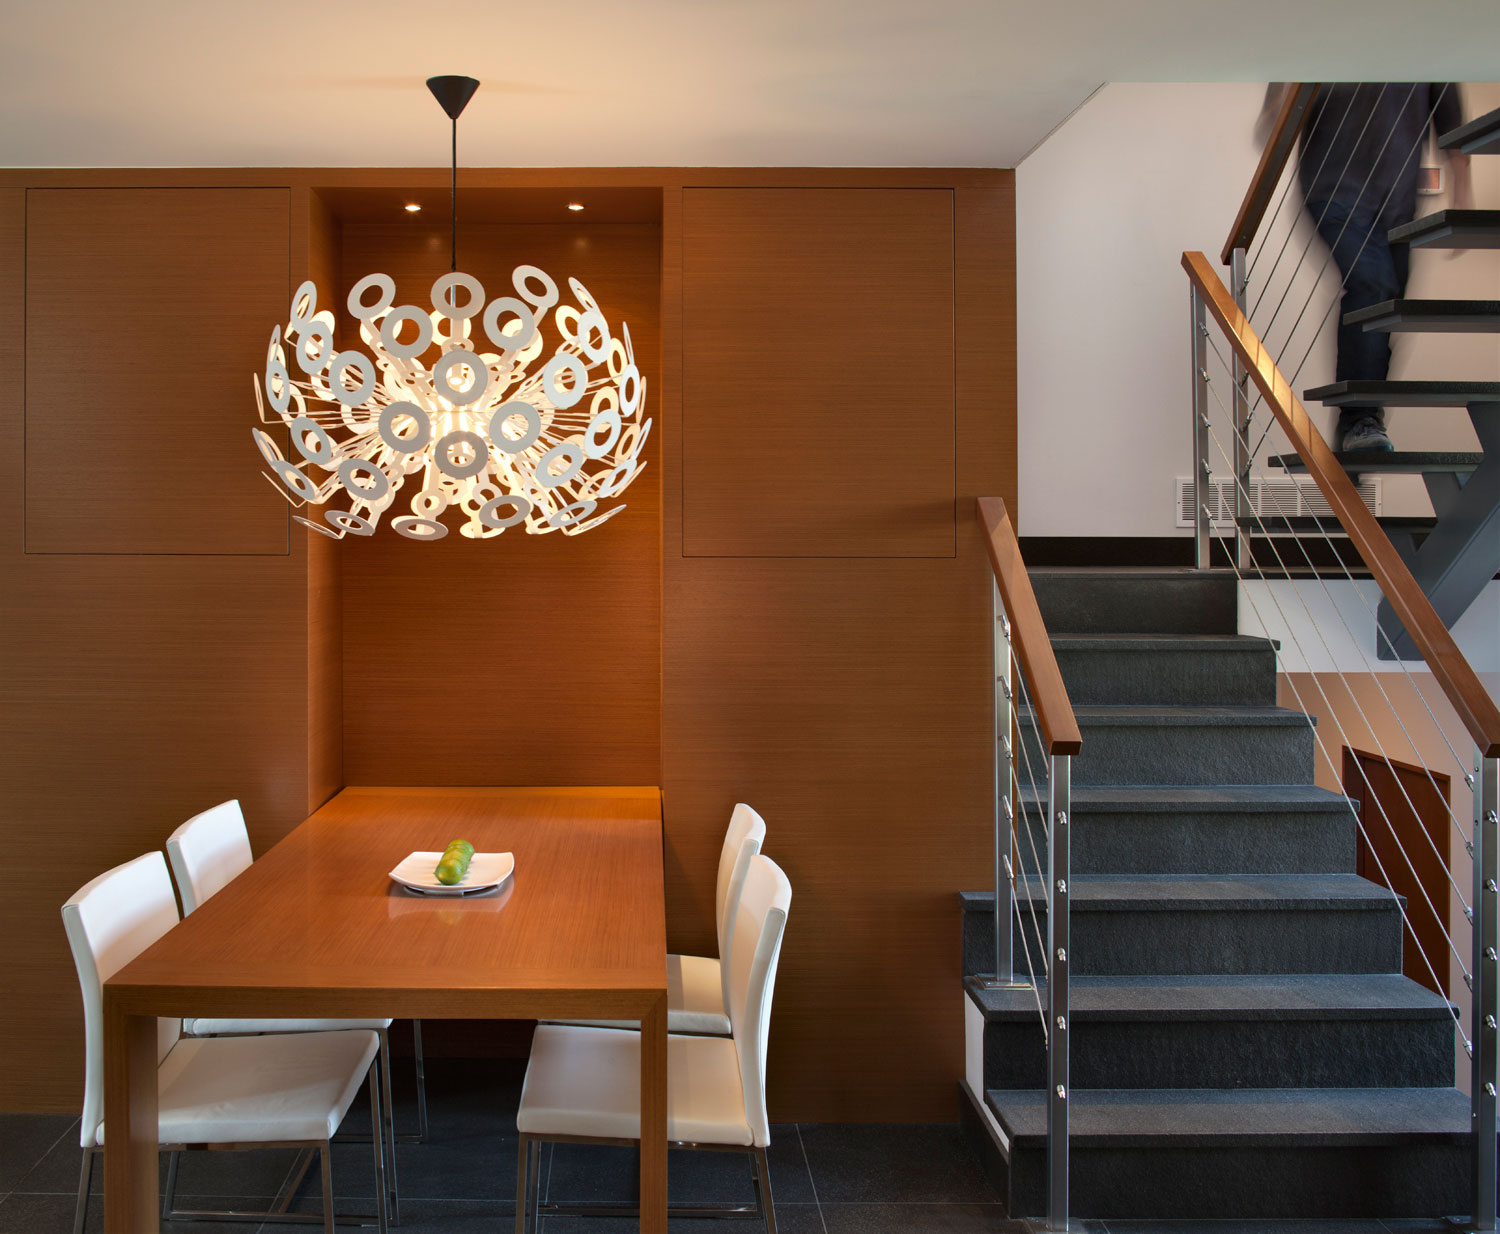 Cool Dining Room Ideas Cool Dining Room Lighting 18 Designs Enhancedhomes Org